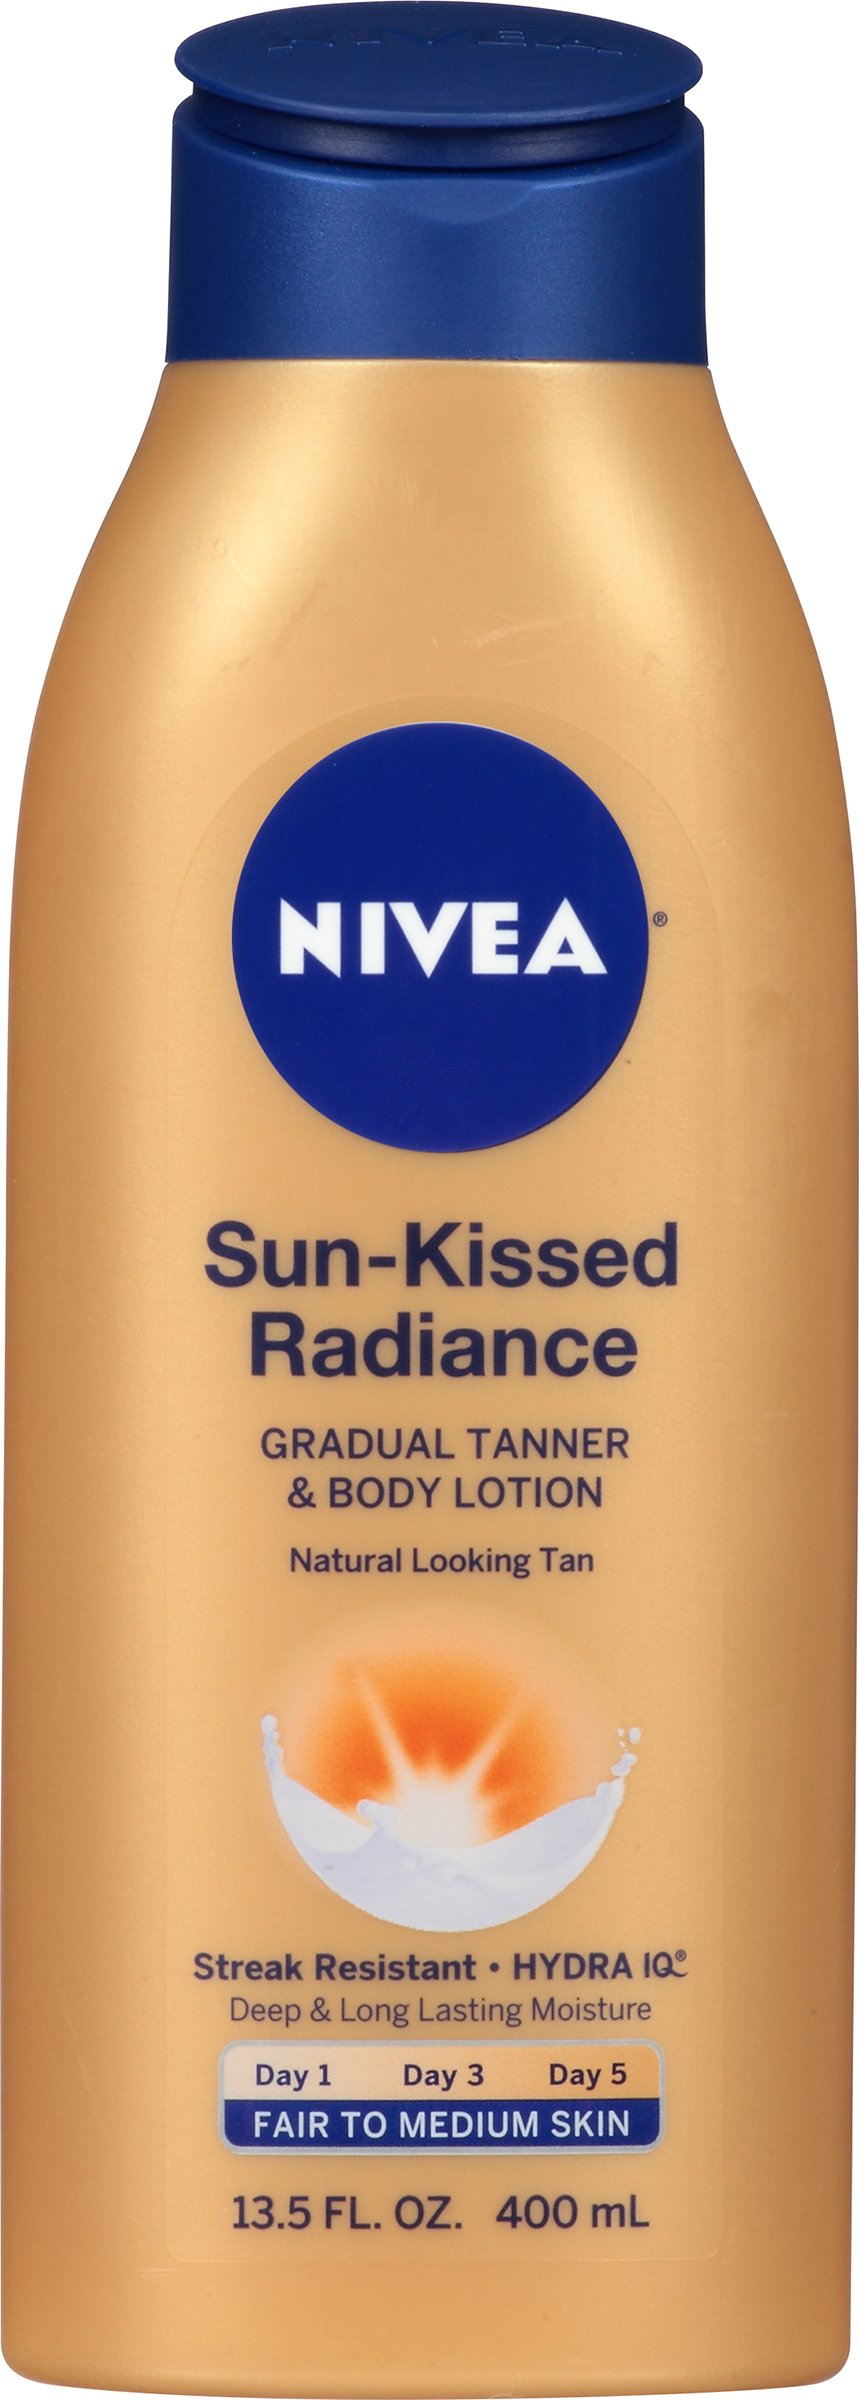 NIVEA Sun-Kissed Radiance Fair to Medium Skin Gradual Tanner & Body Lotion 13.5 Fluid Ounce